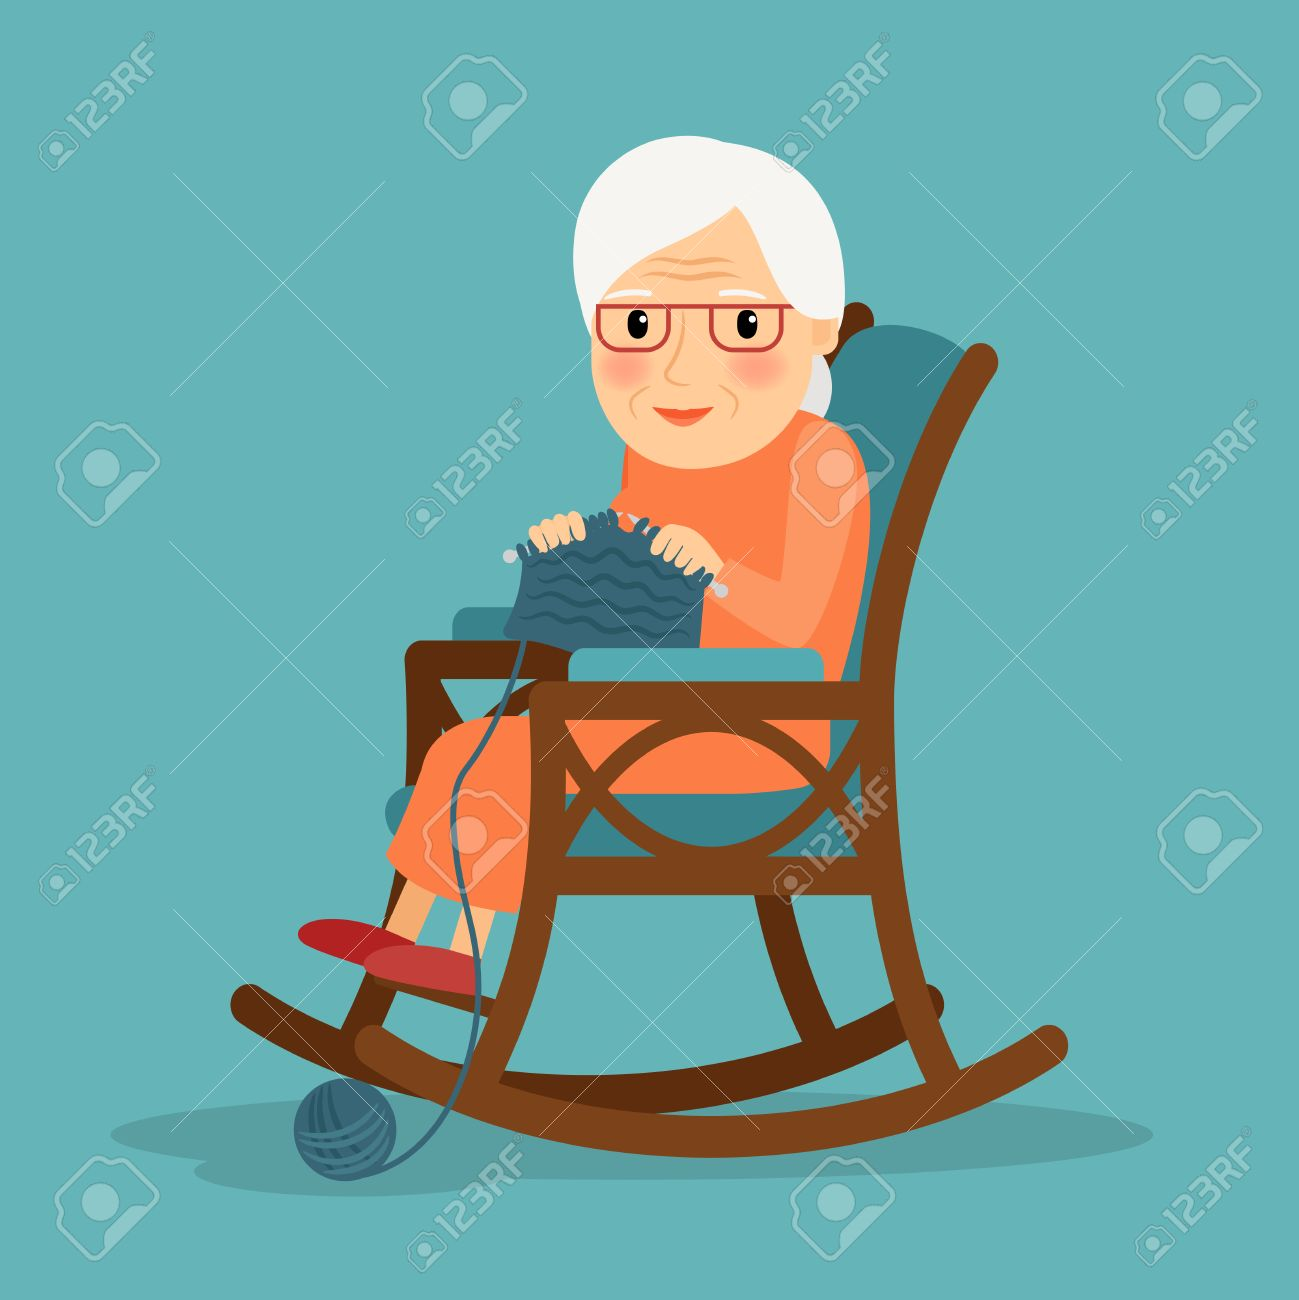 Knitting. Old woman knits. Granny knitting in her rocking chair. - 55978013